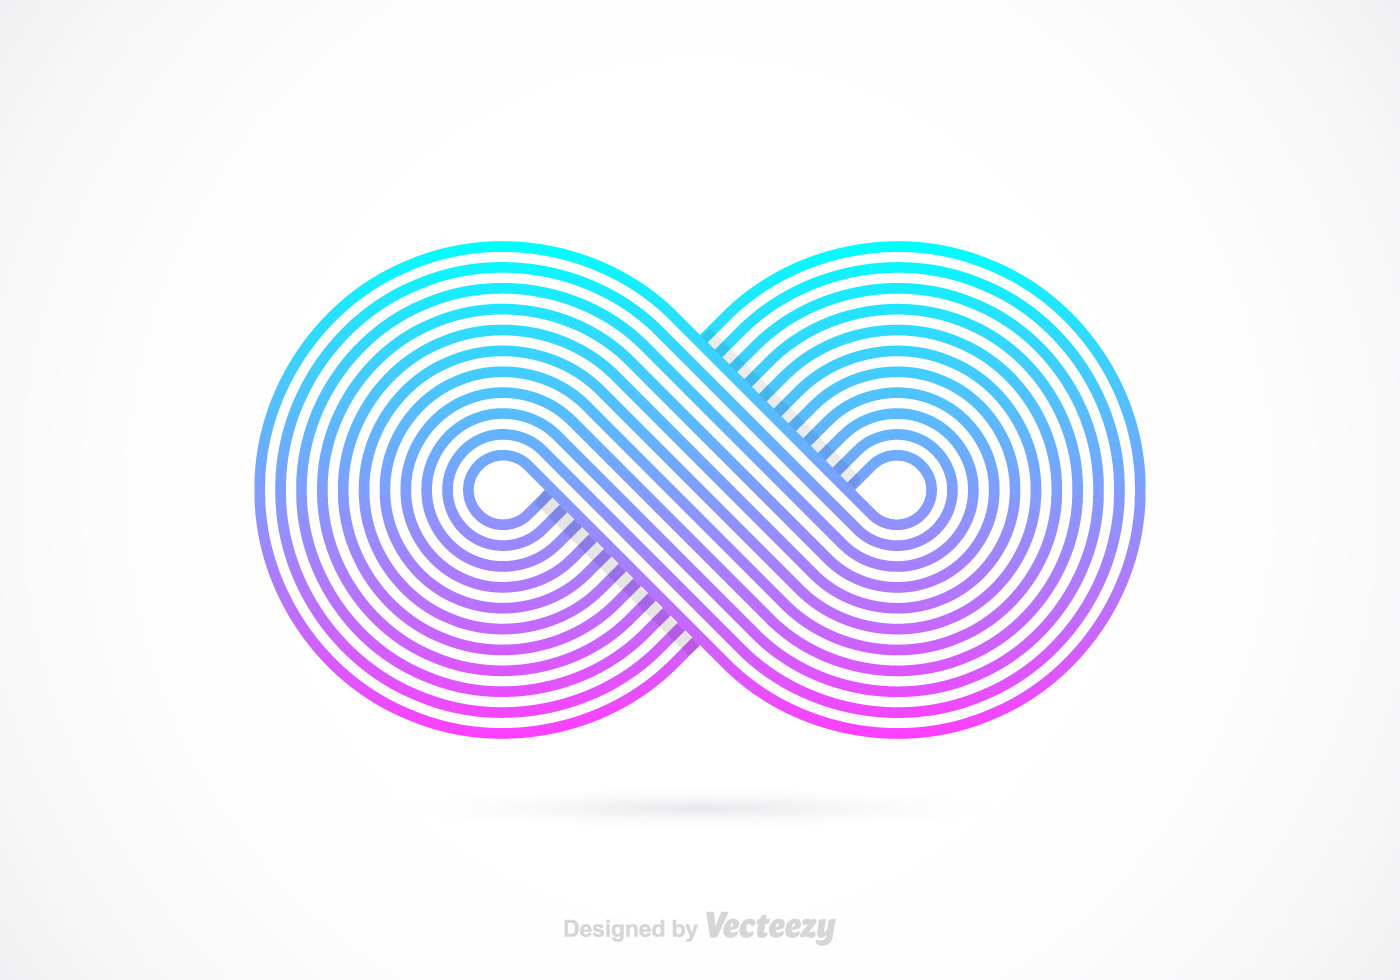 Retro Infinity Symbol Vector - Download Free Vector Art ...